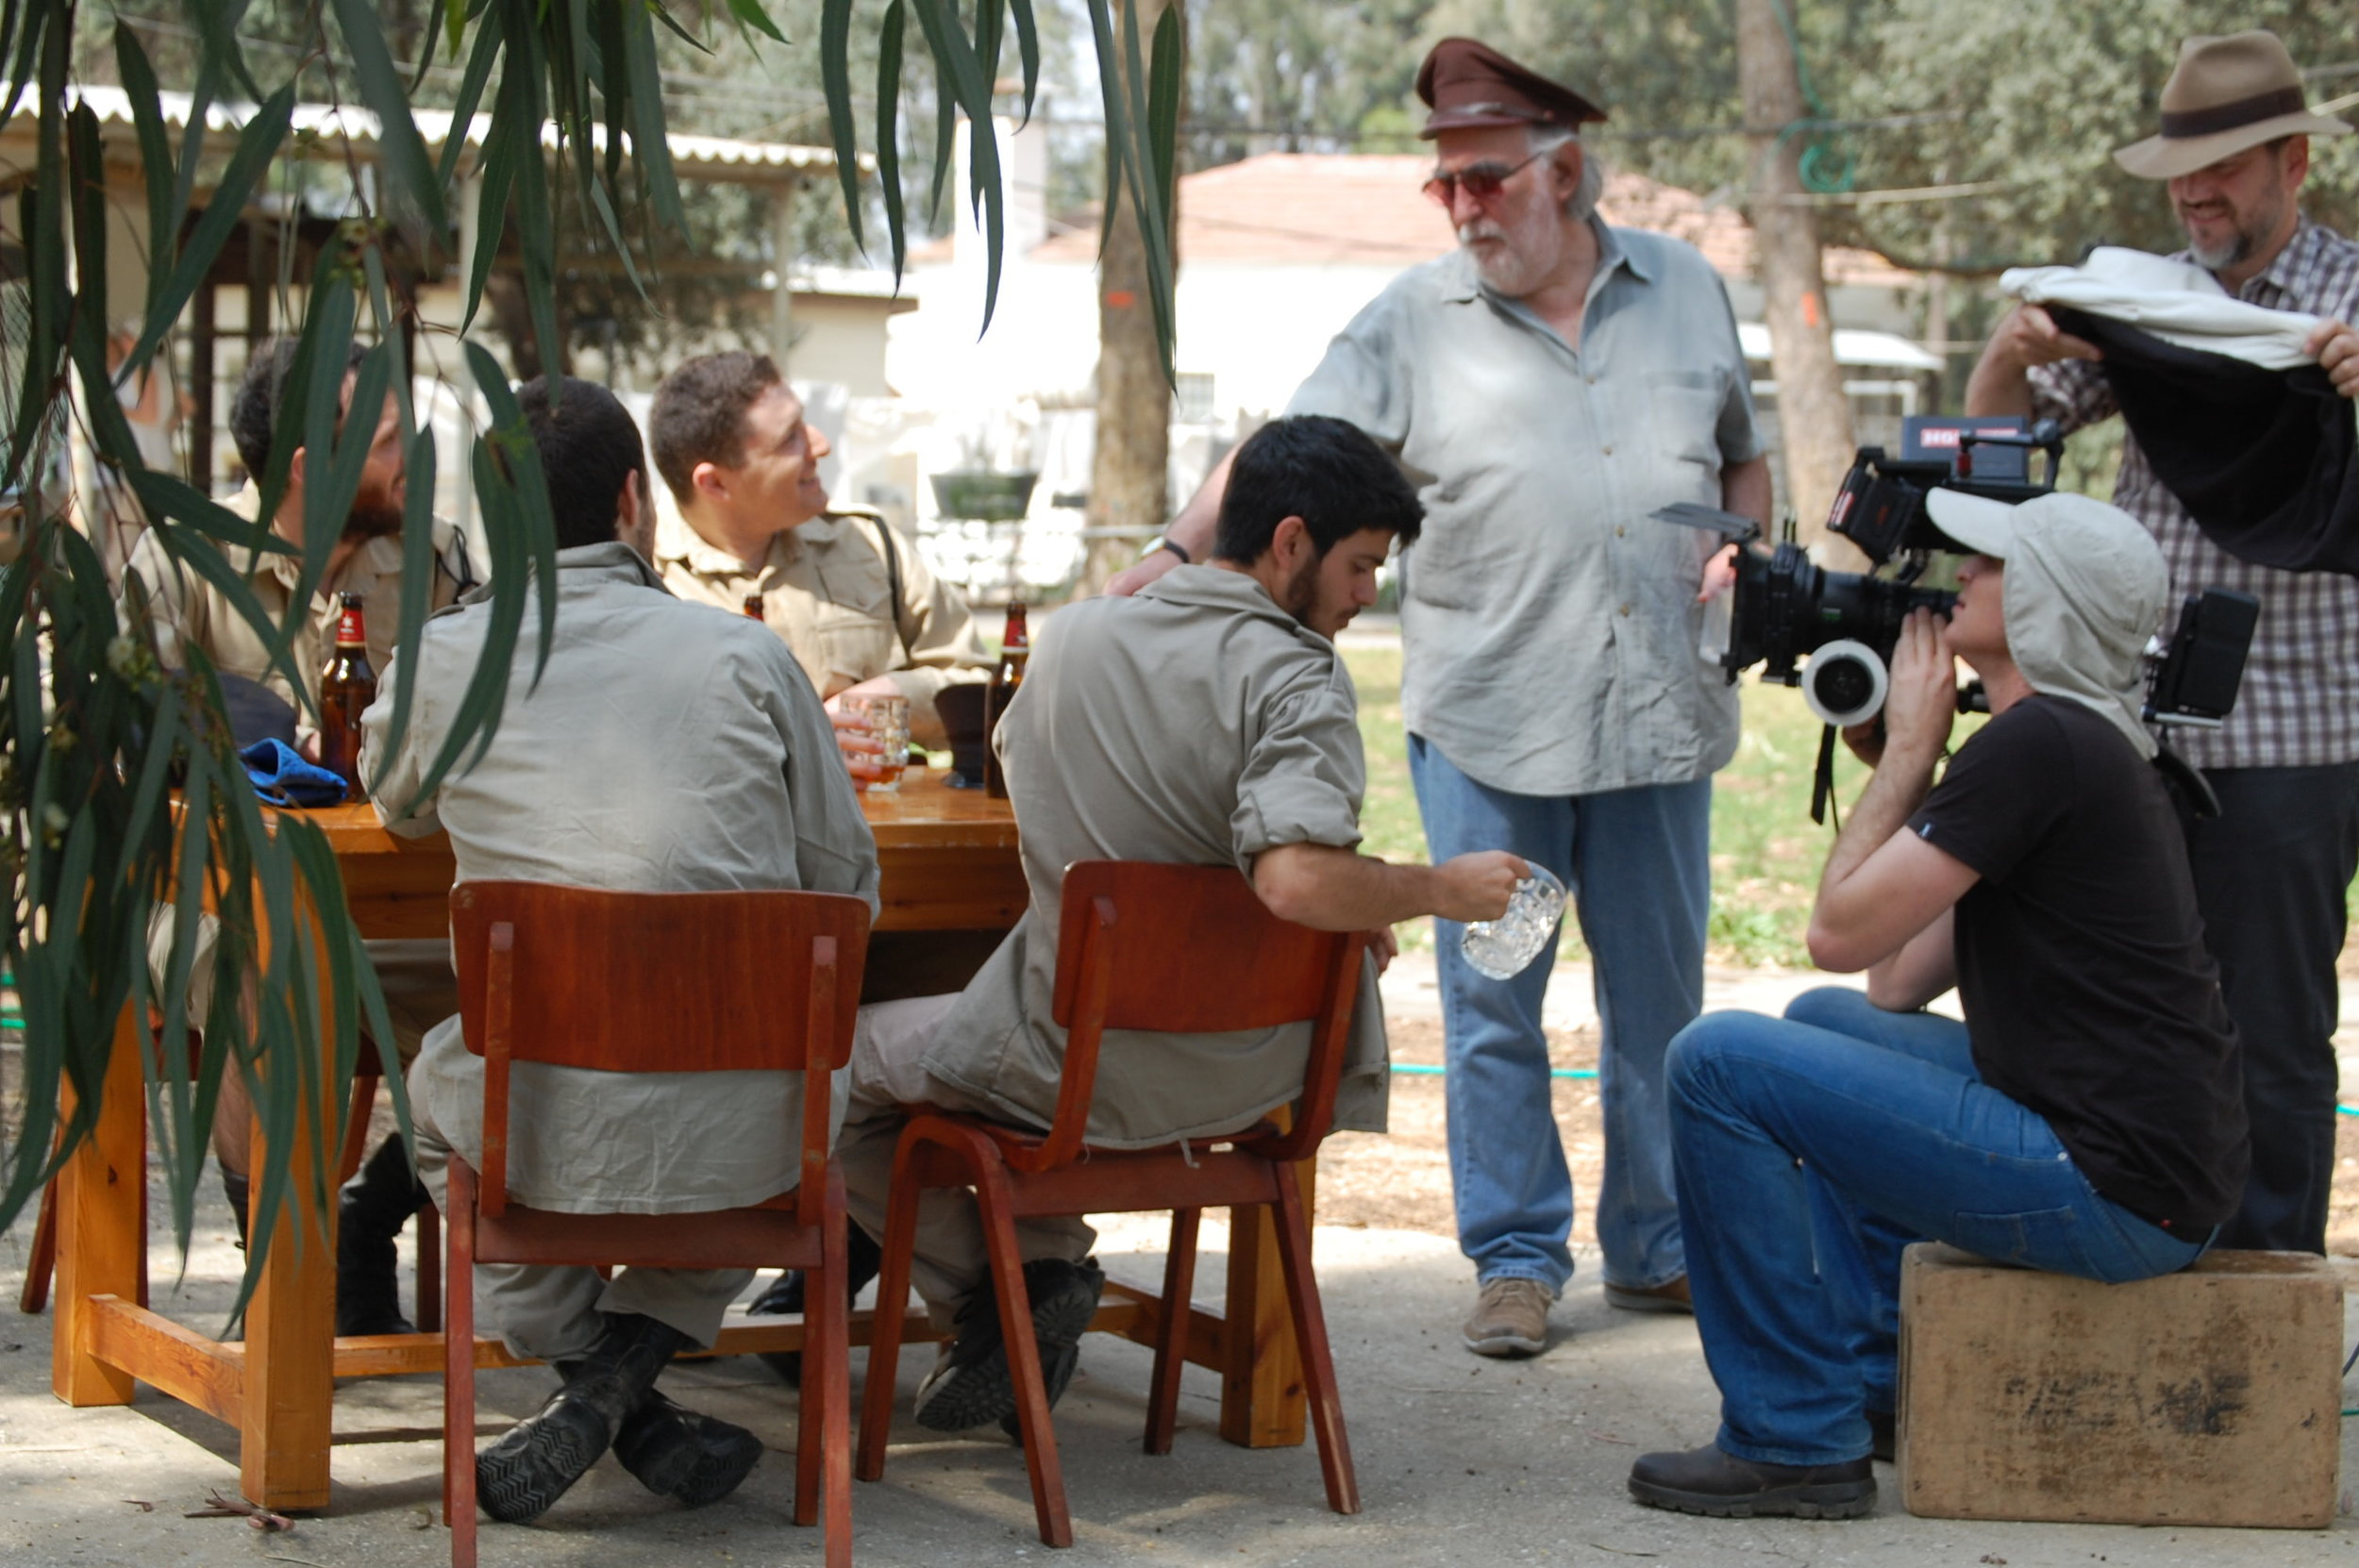 On set in Rehovet, Israel (March 2015)